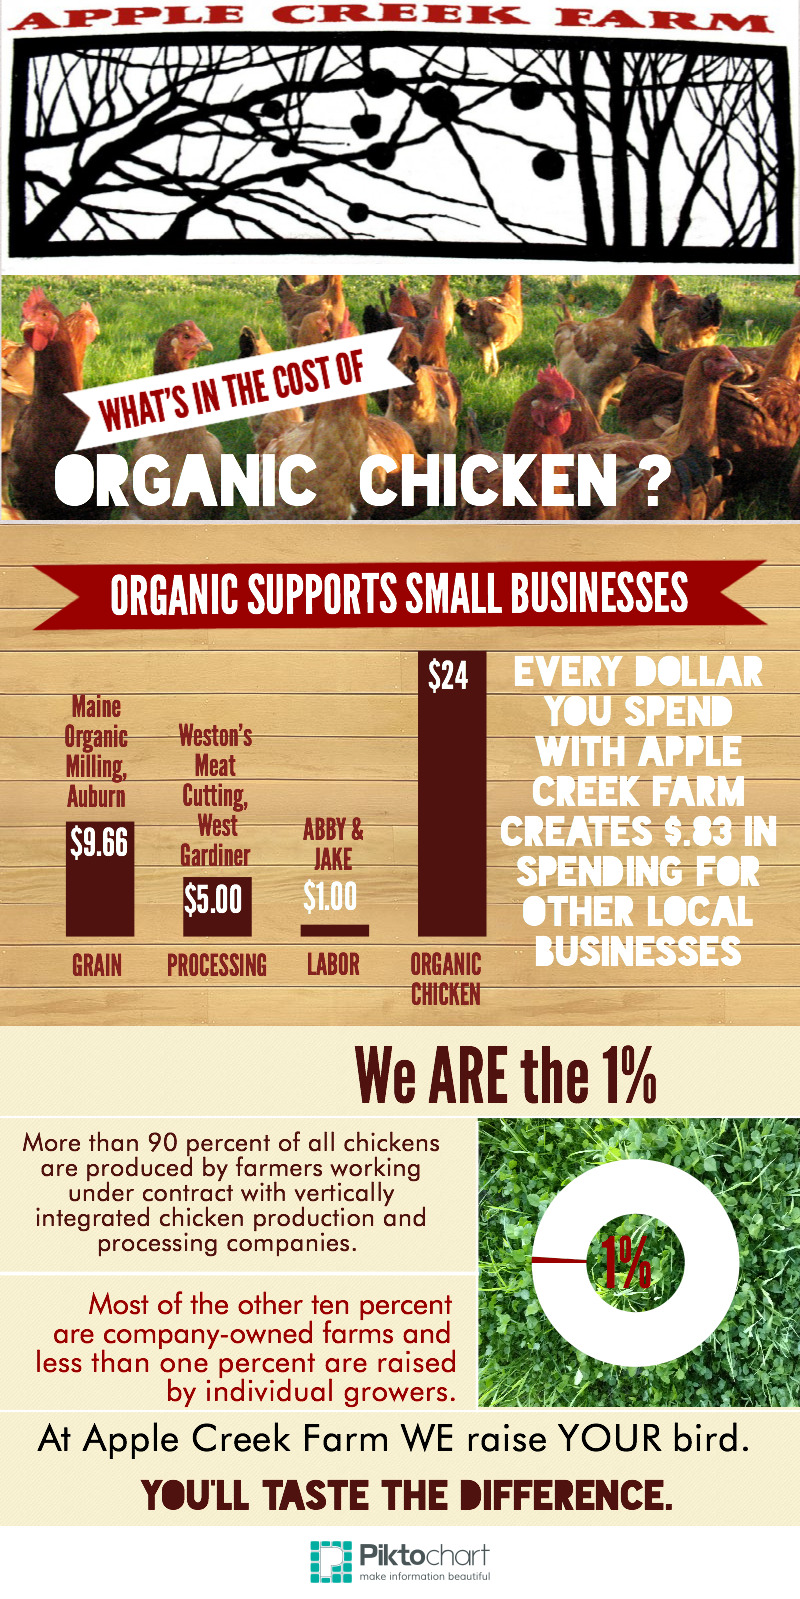 What's in the Cost of Apple Creek Farm's Organic Chicken?